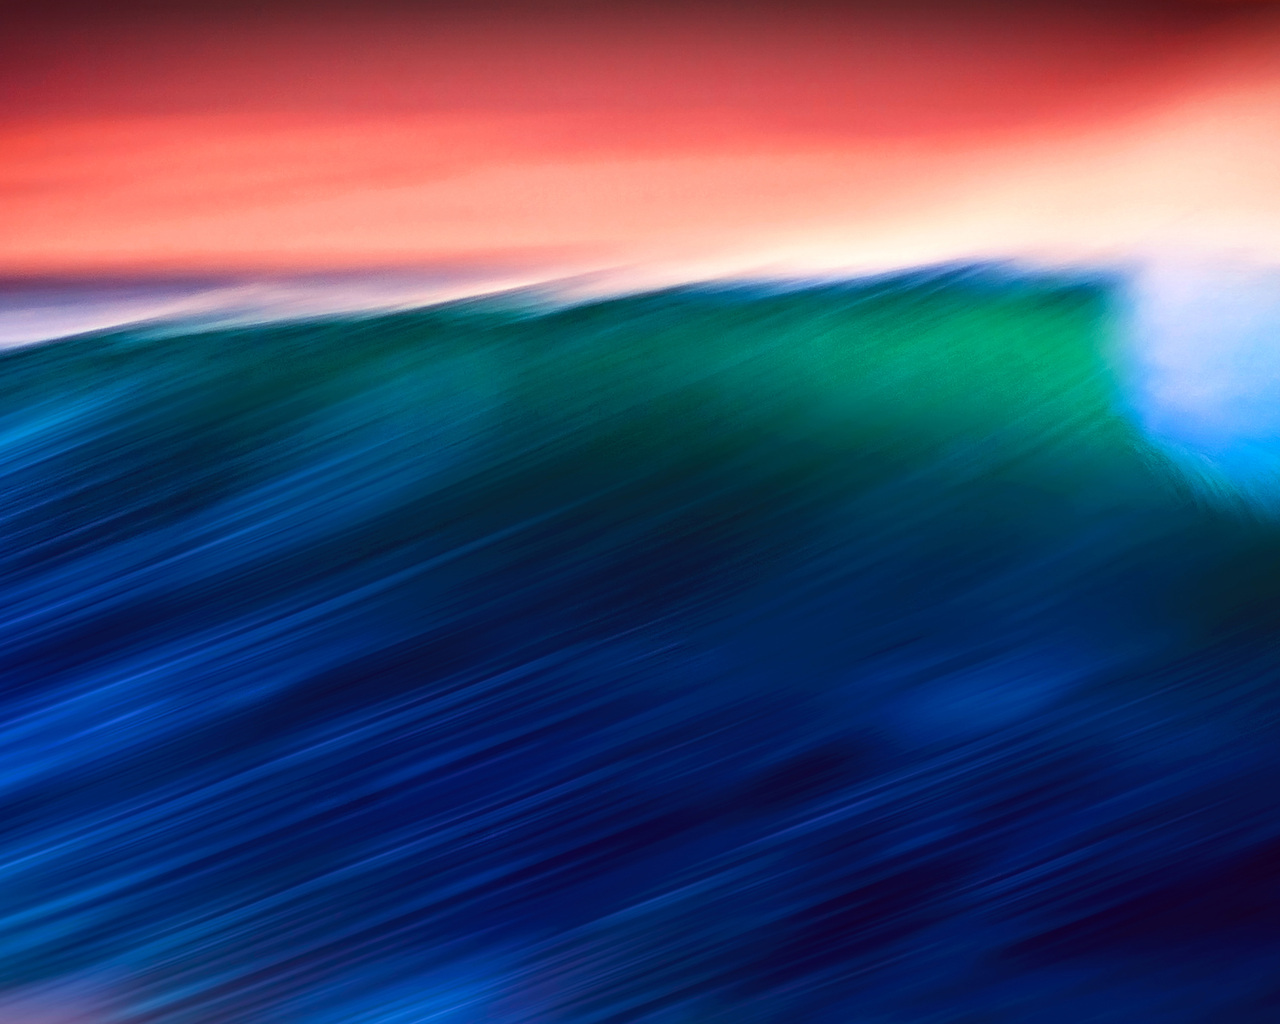 waves-abstract-5k-uu.jpg